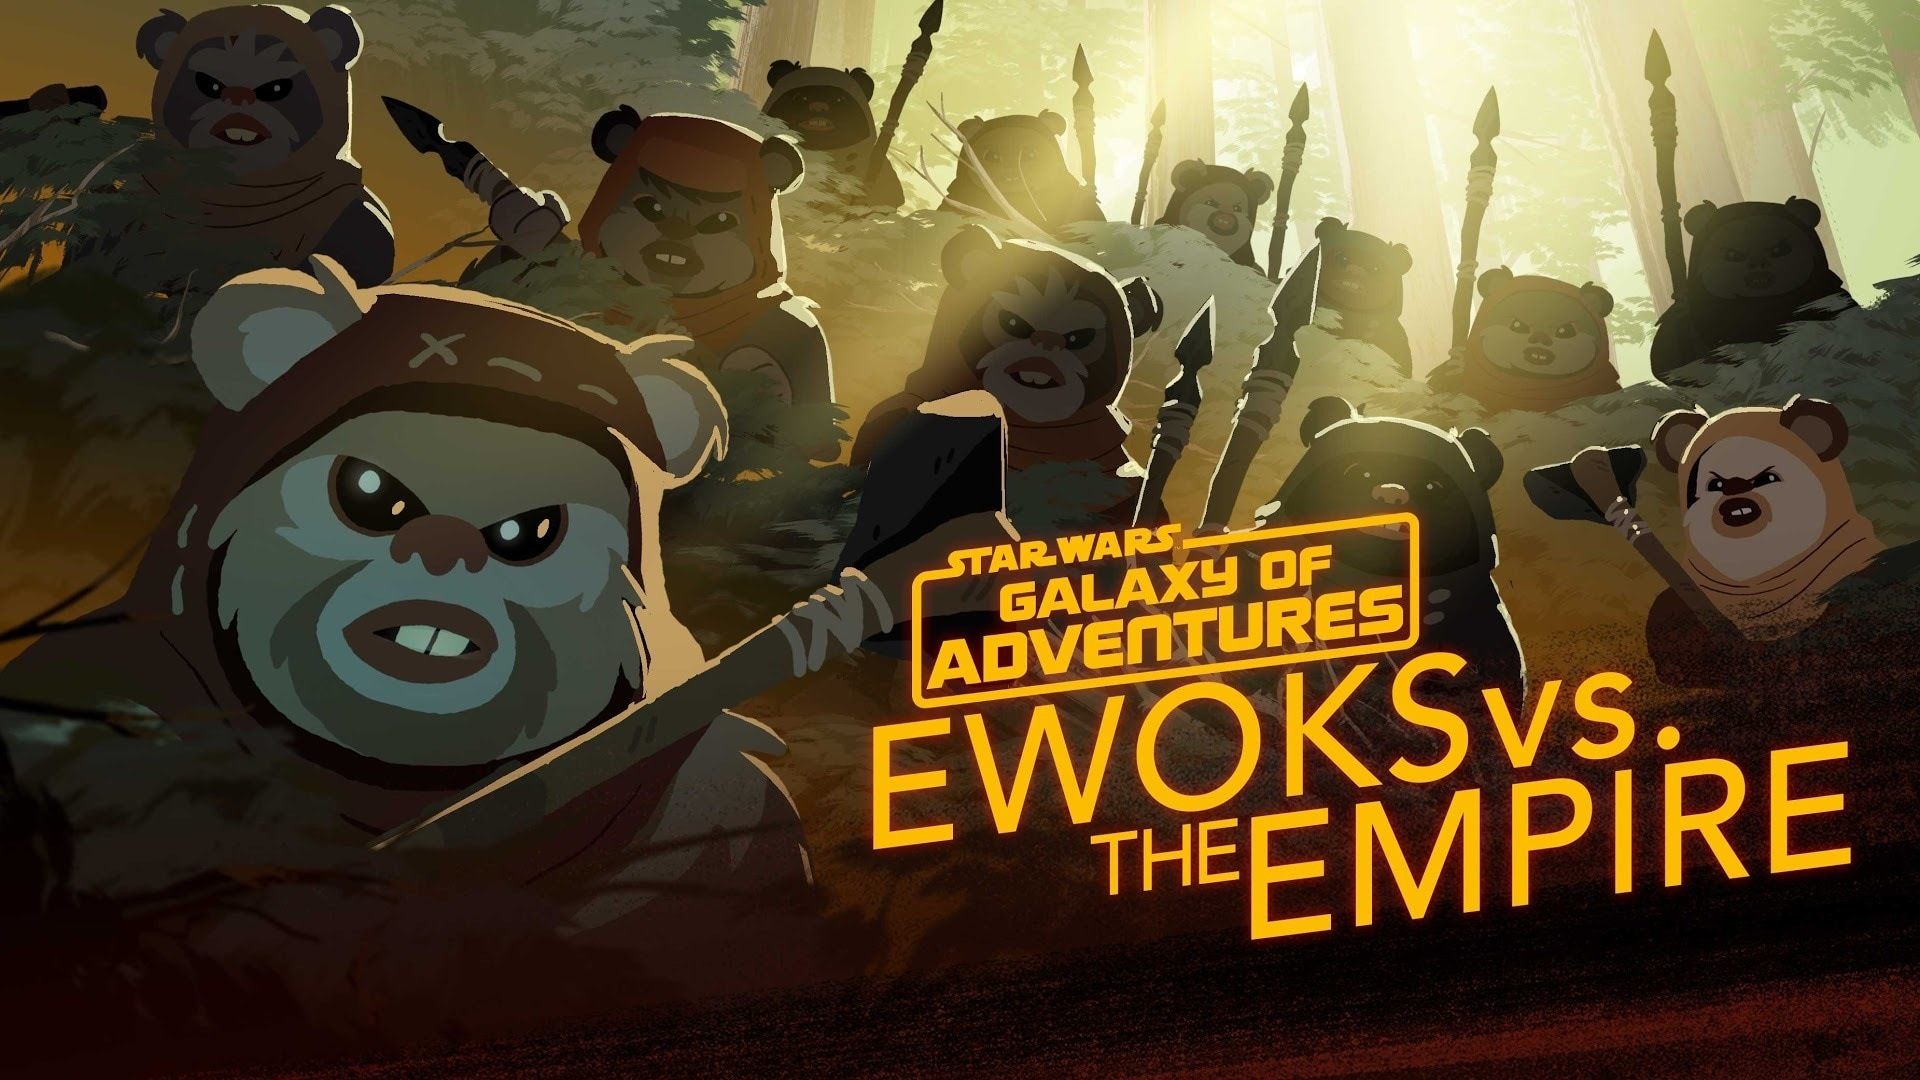 Ewoks vs. The Empire - Small but Mighty | Star Wars Galaxy of Adventures